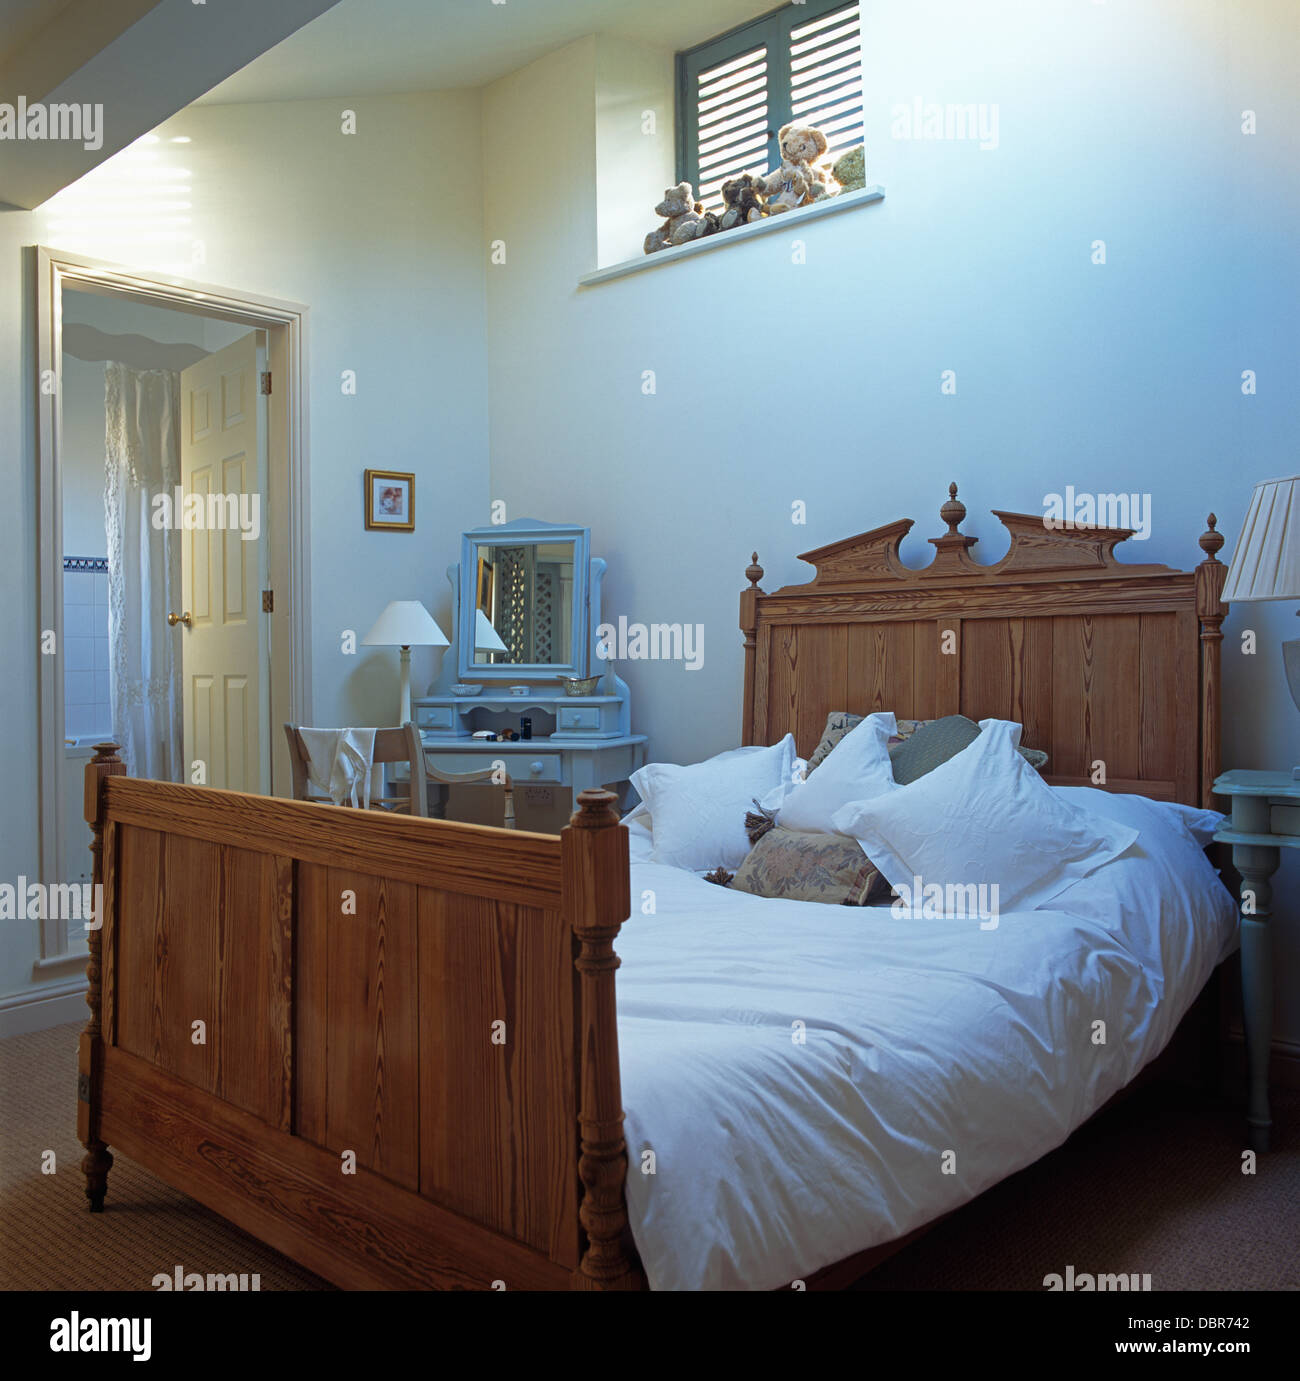 White Duvet And Pillows On Old Pine Bed With Ornate Headboard In Modern Bedroom En Suite Bathroom